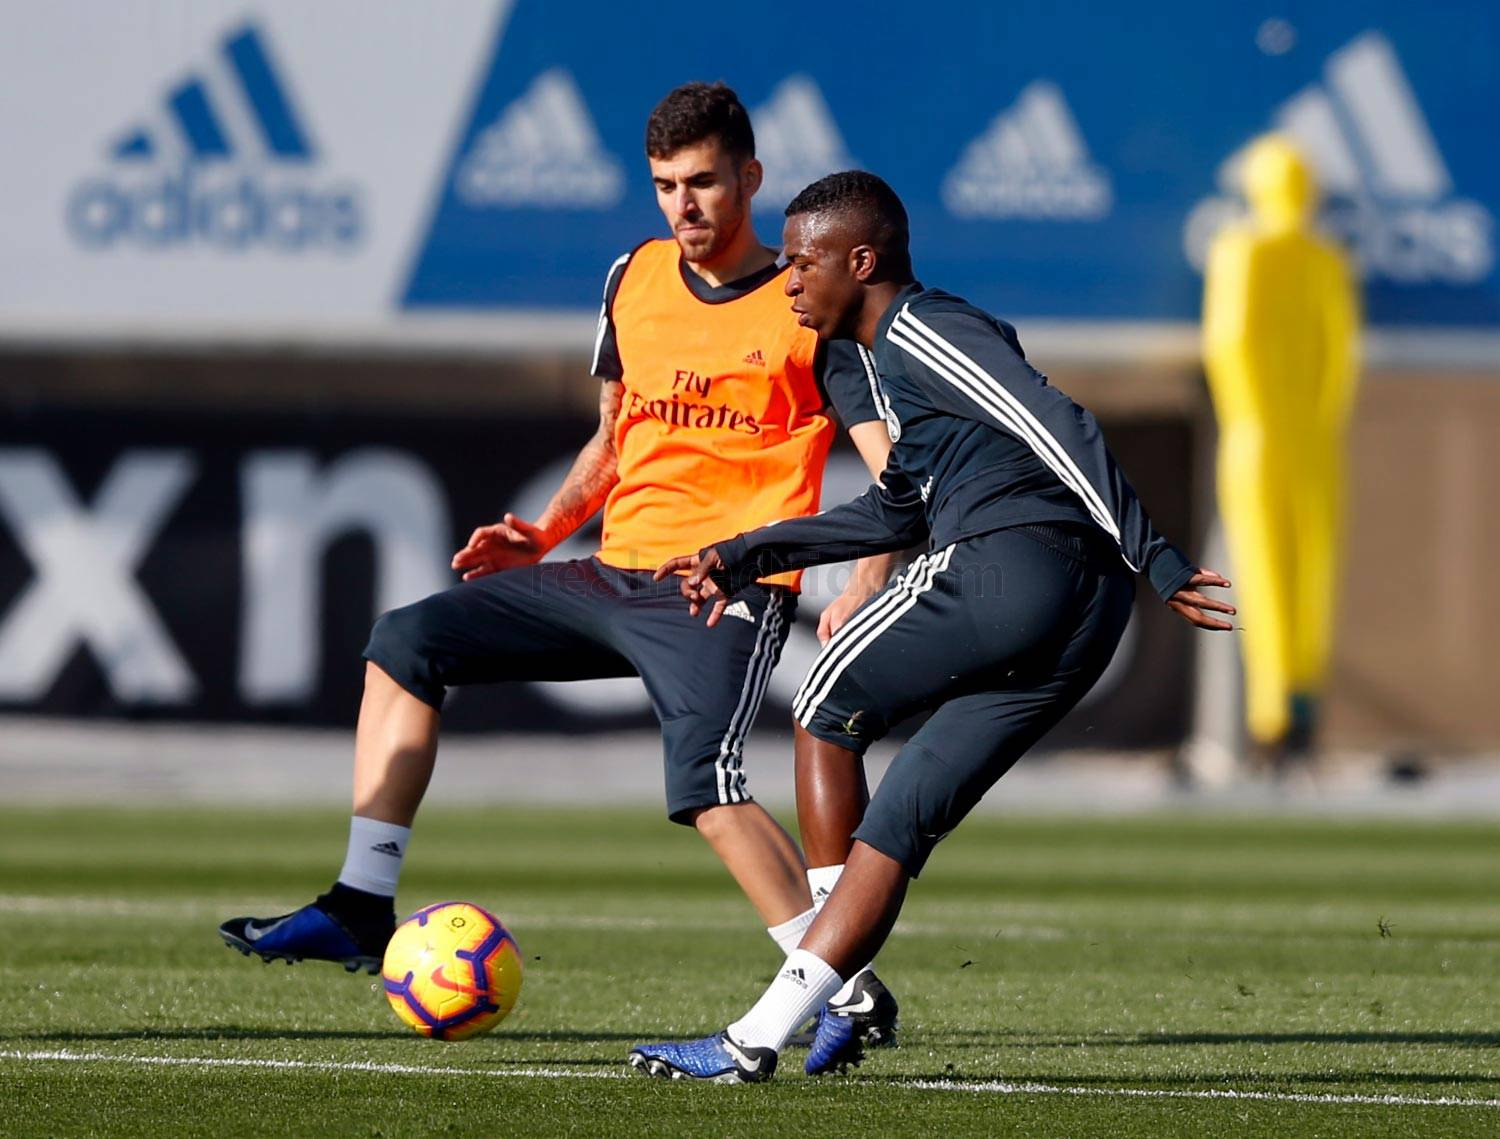 Real Madrid - Entrenamiento del Real Madrid - 28-11-2018